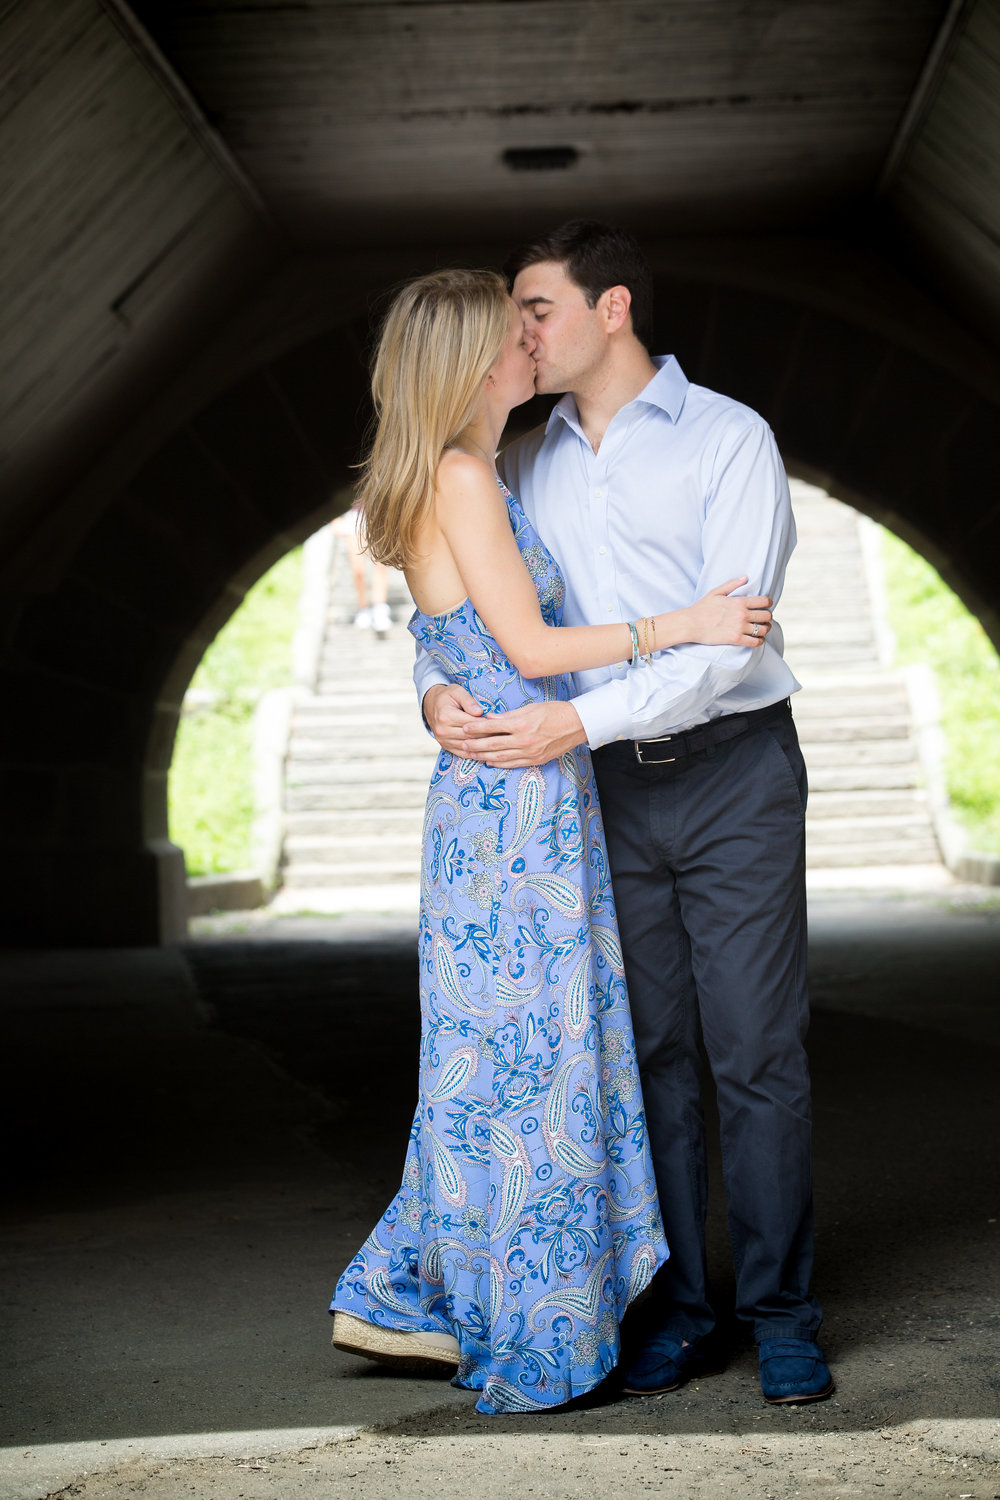 engagement-shoot-central-park-nyc-103.jpg